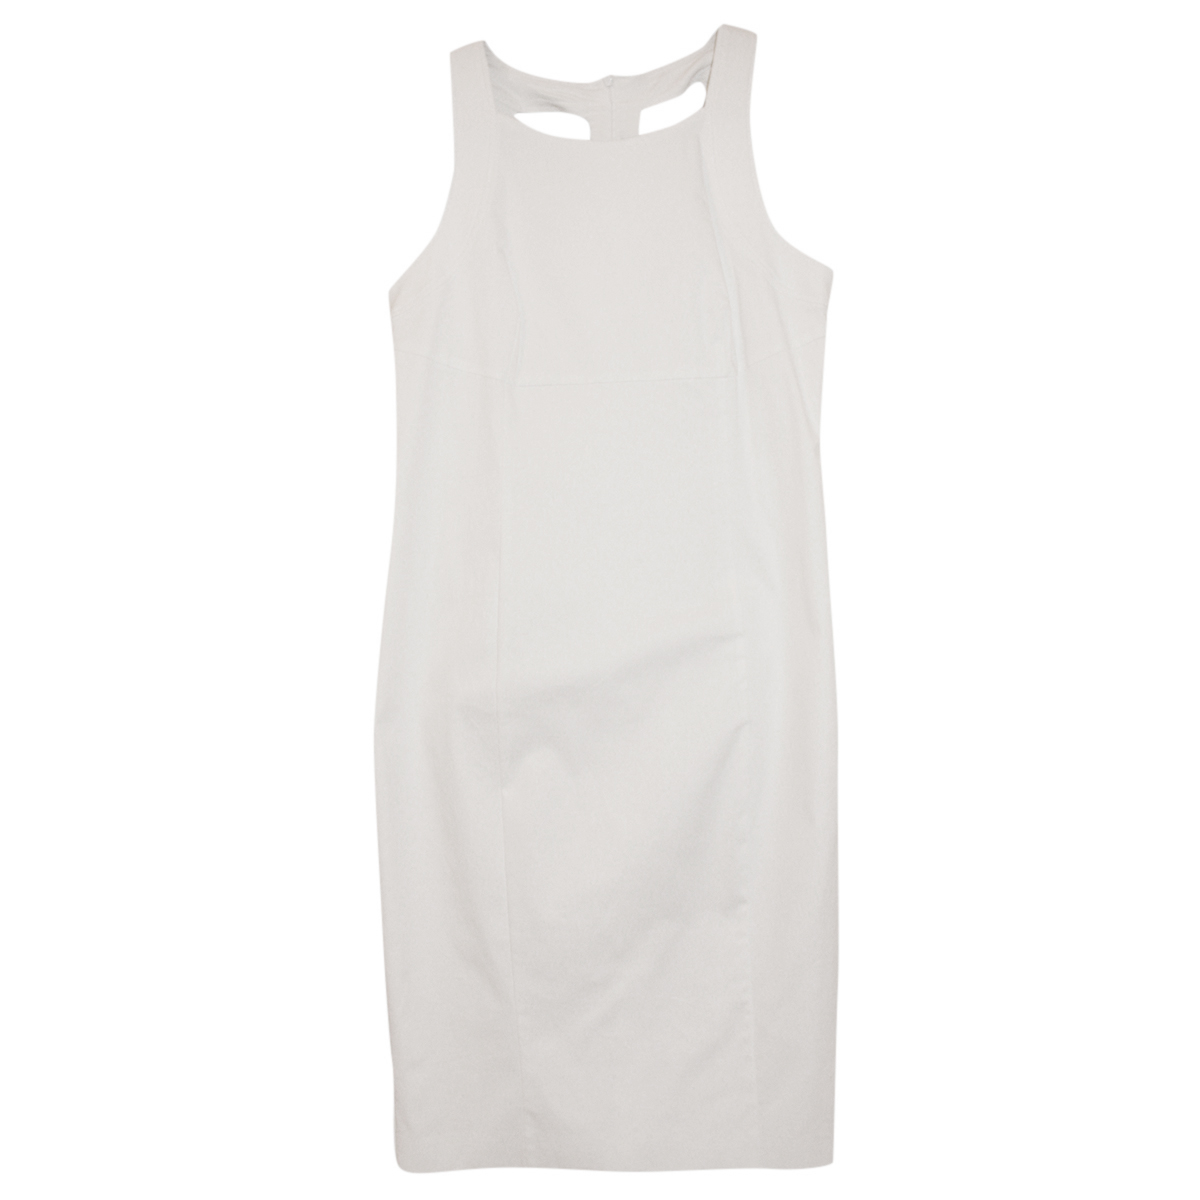 MaxMara Studio white bodycon dress